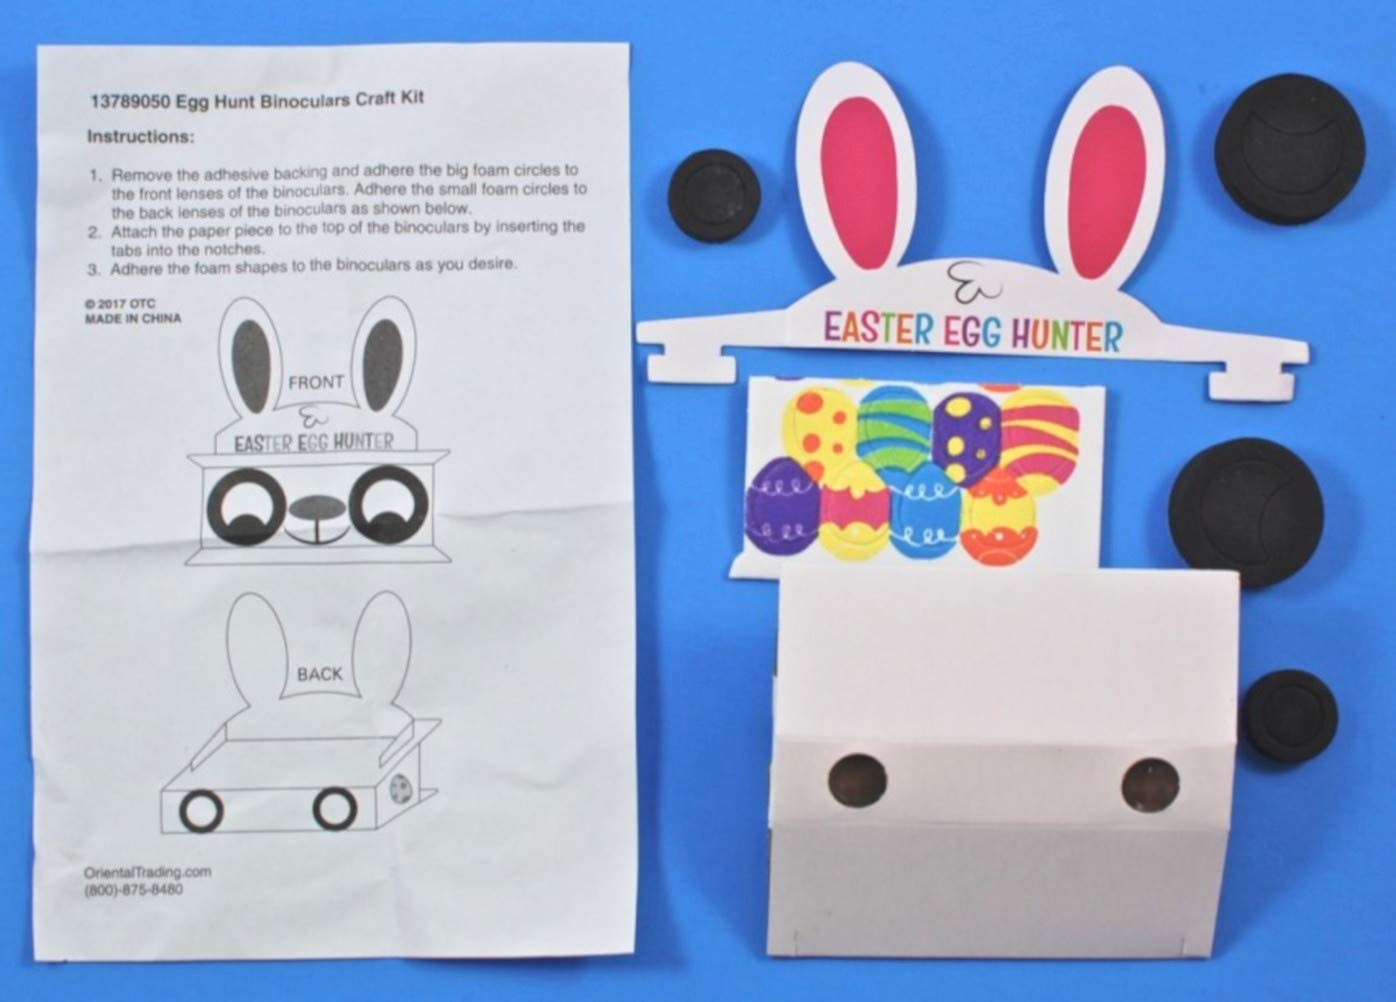 Set of 12 Bundled with an Extra Treat of Candy GBBD Easter Craft Kits for Kids Binoculars to Hunt Eggs